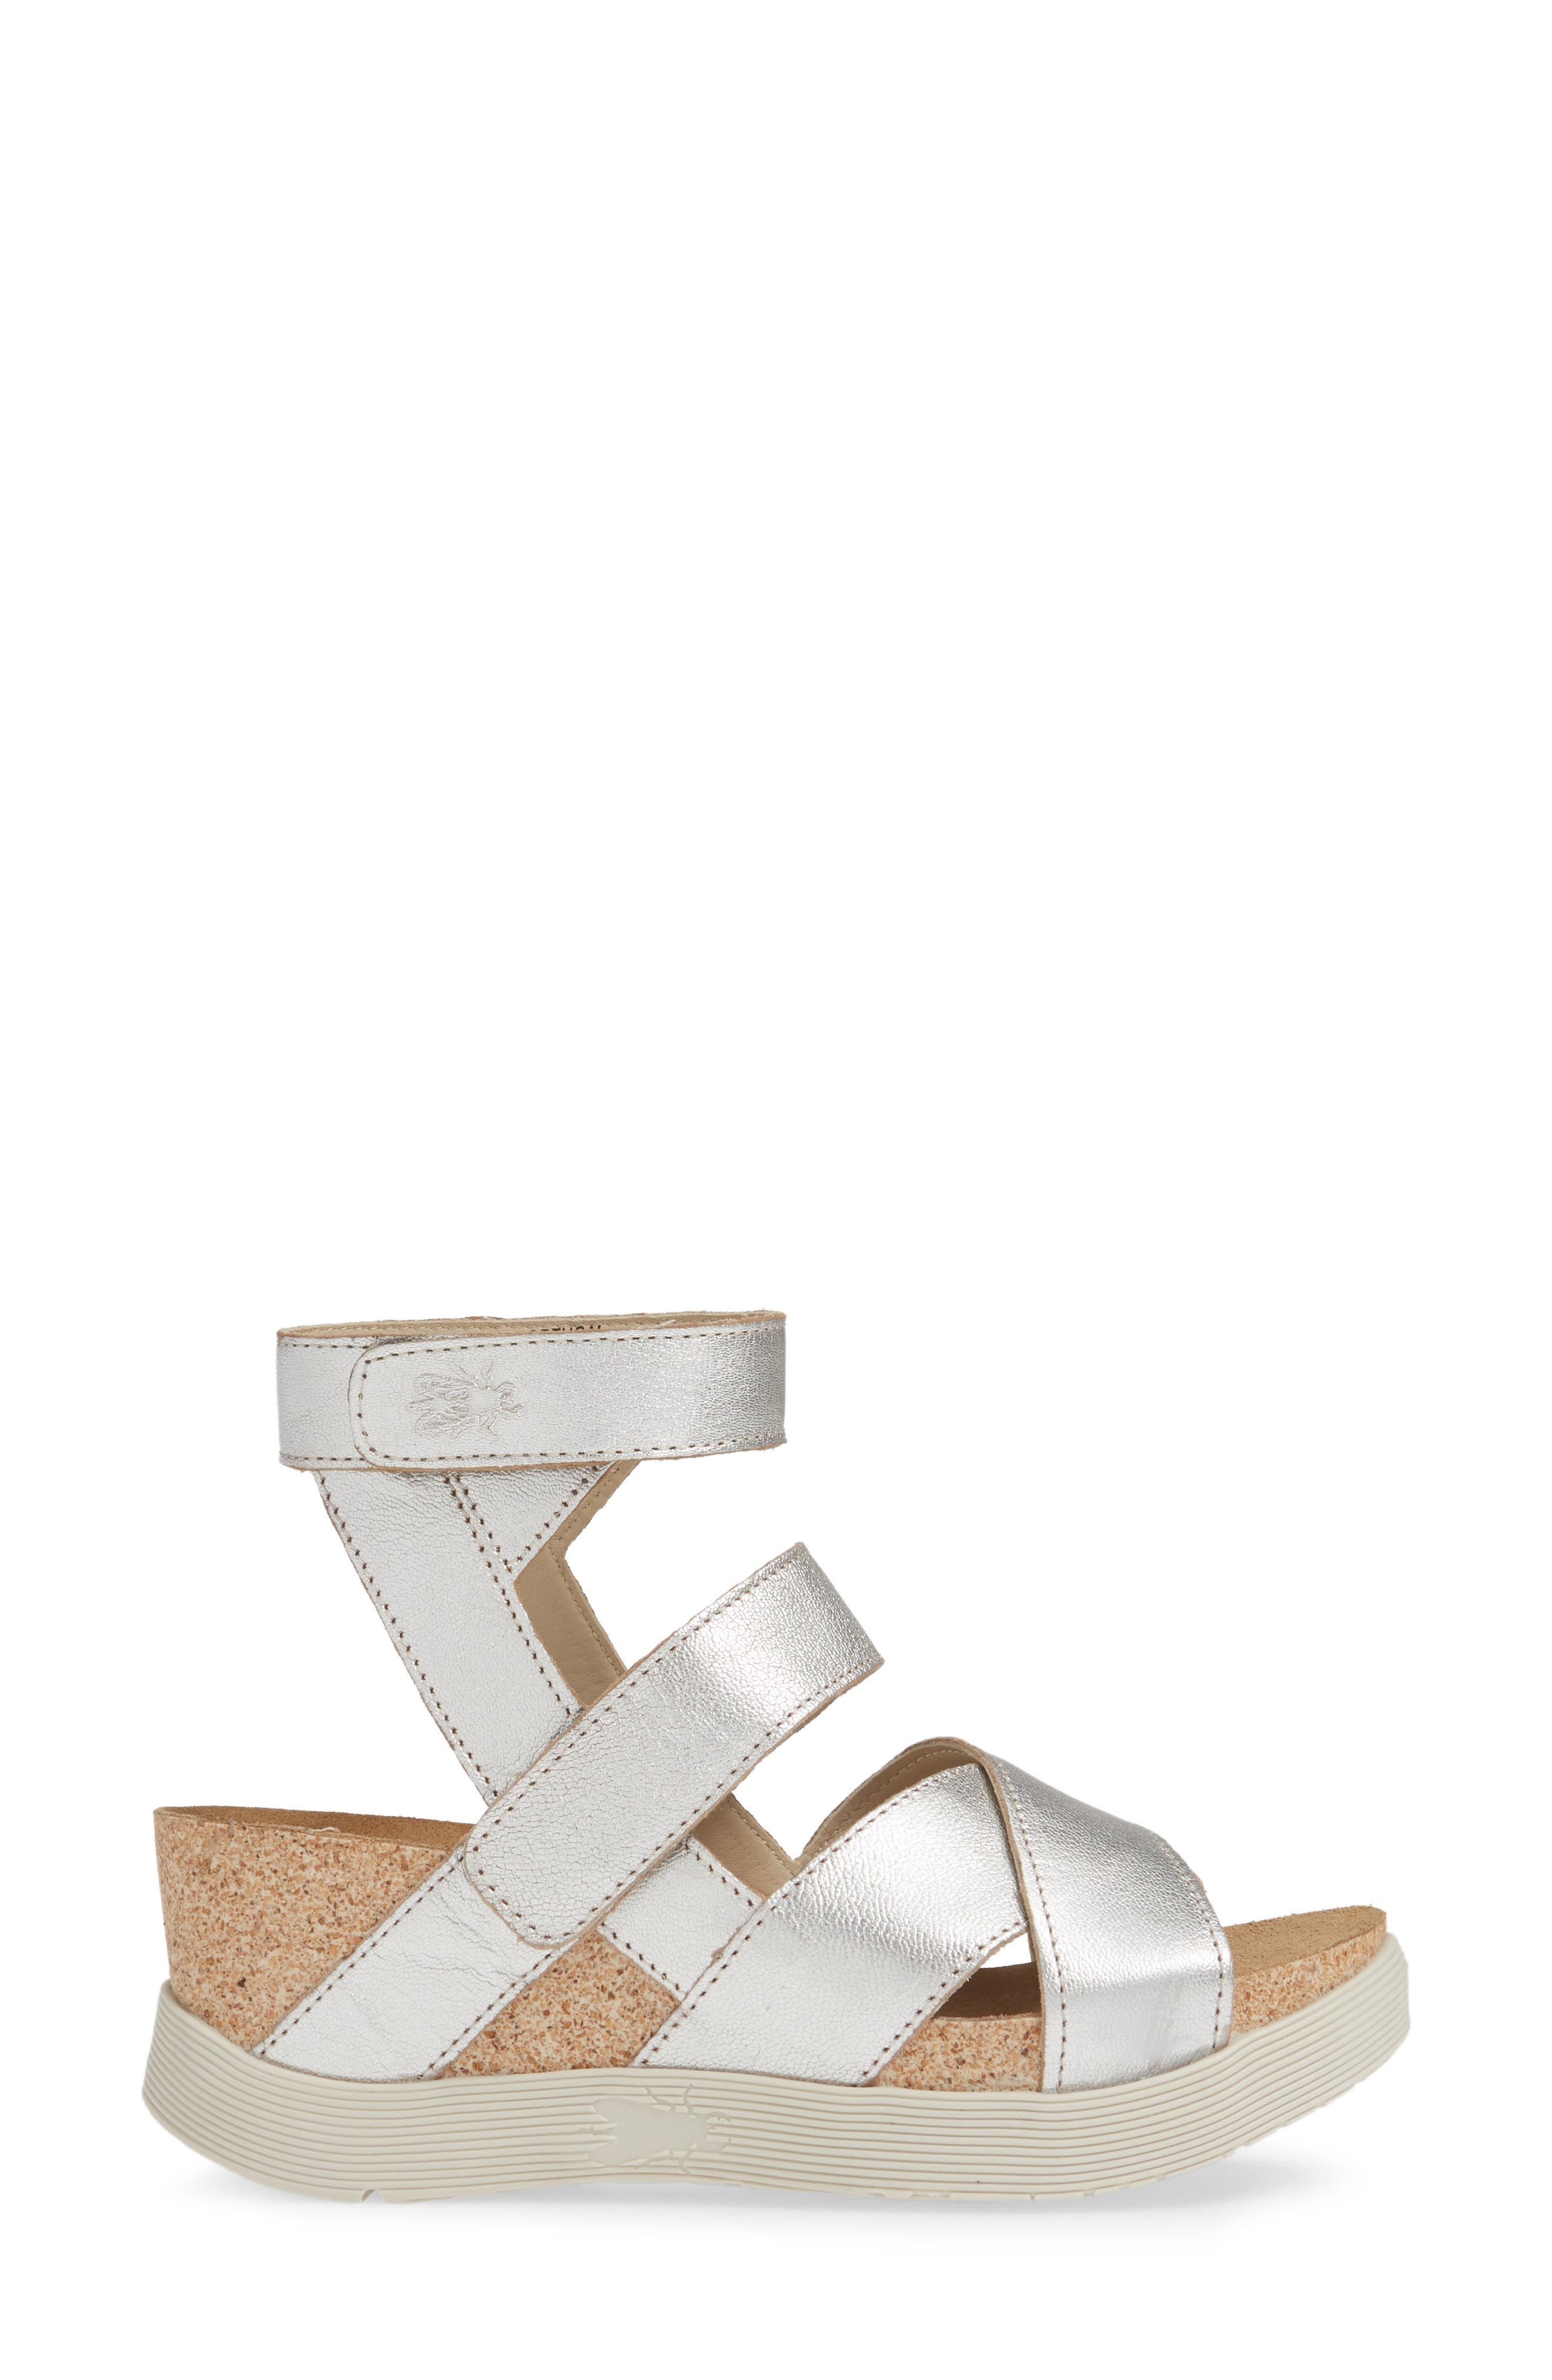 FLY LONDON, 'Wege' Leather Sandal, Alternate thumbnail 3, color, SILVER LEATHER